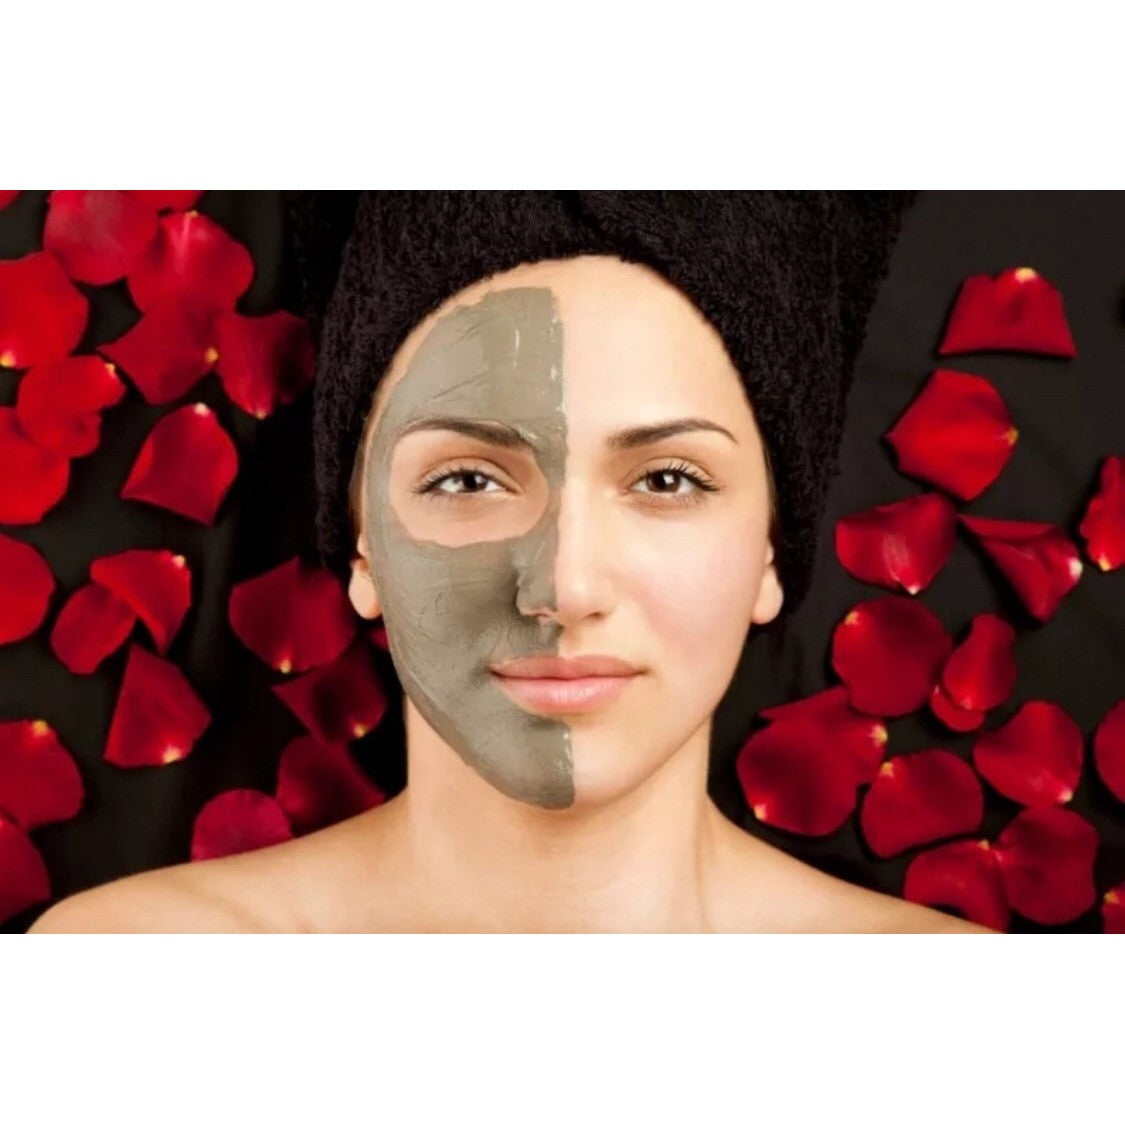 15 gm Fullers Earth Powder Skin Lightening Mud Masks - ModelSupplies